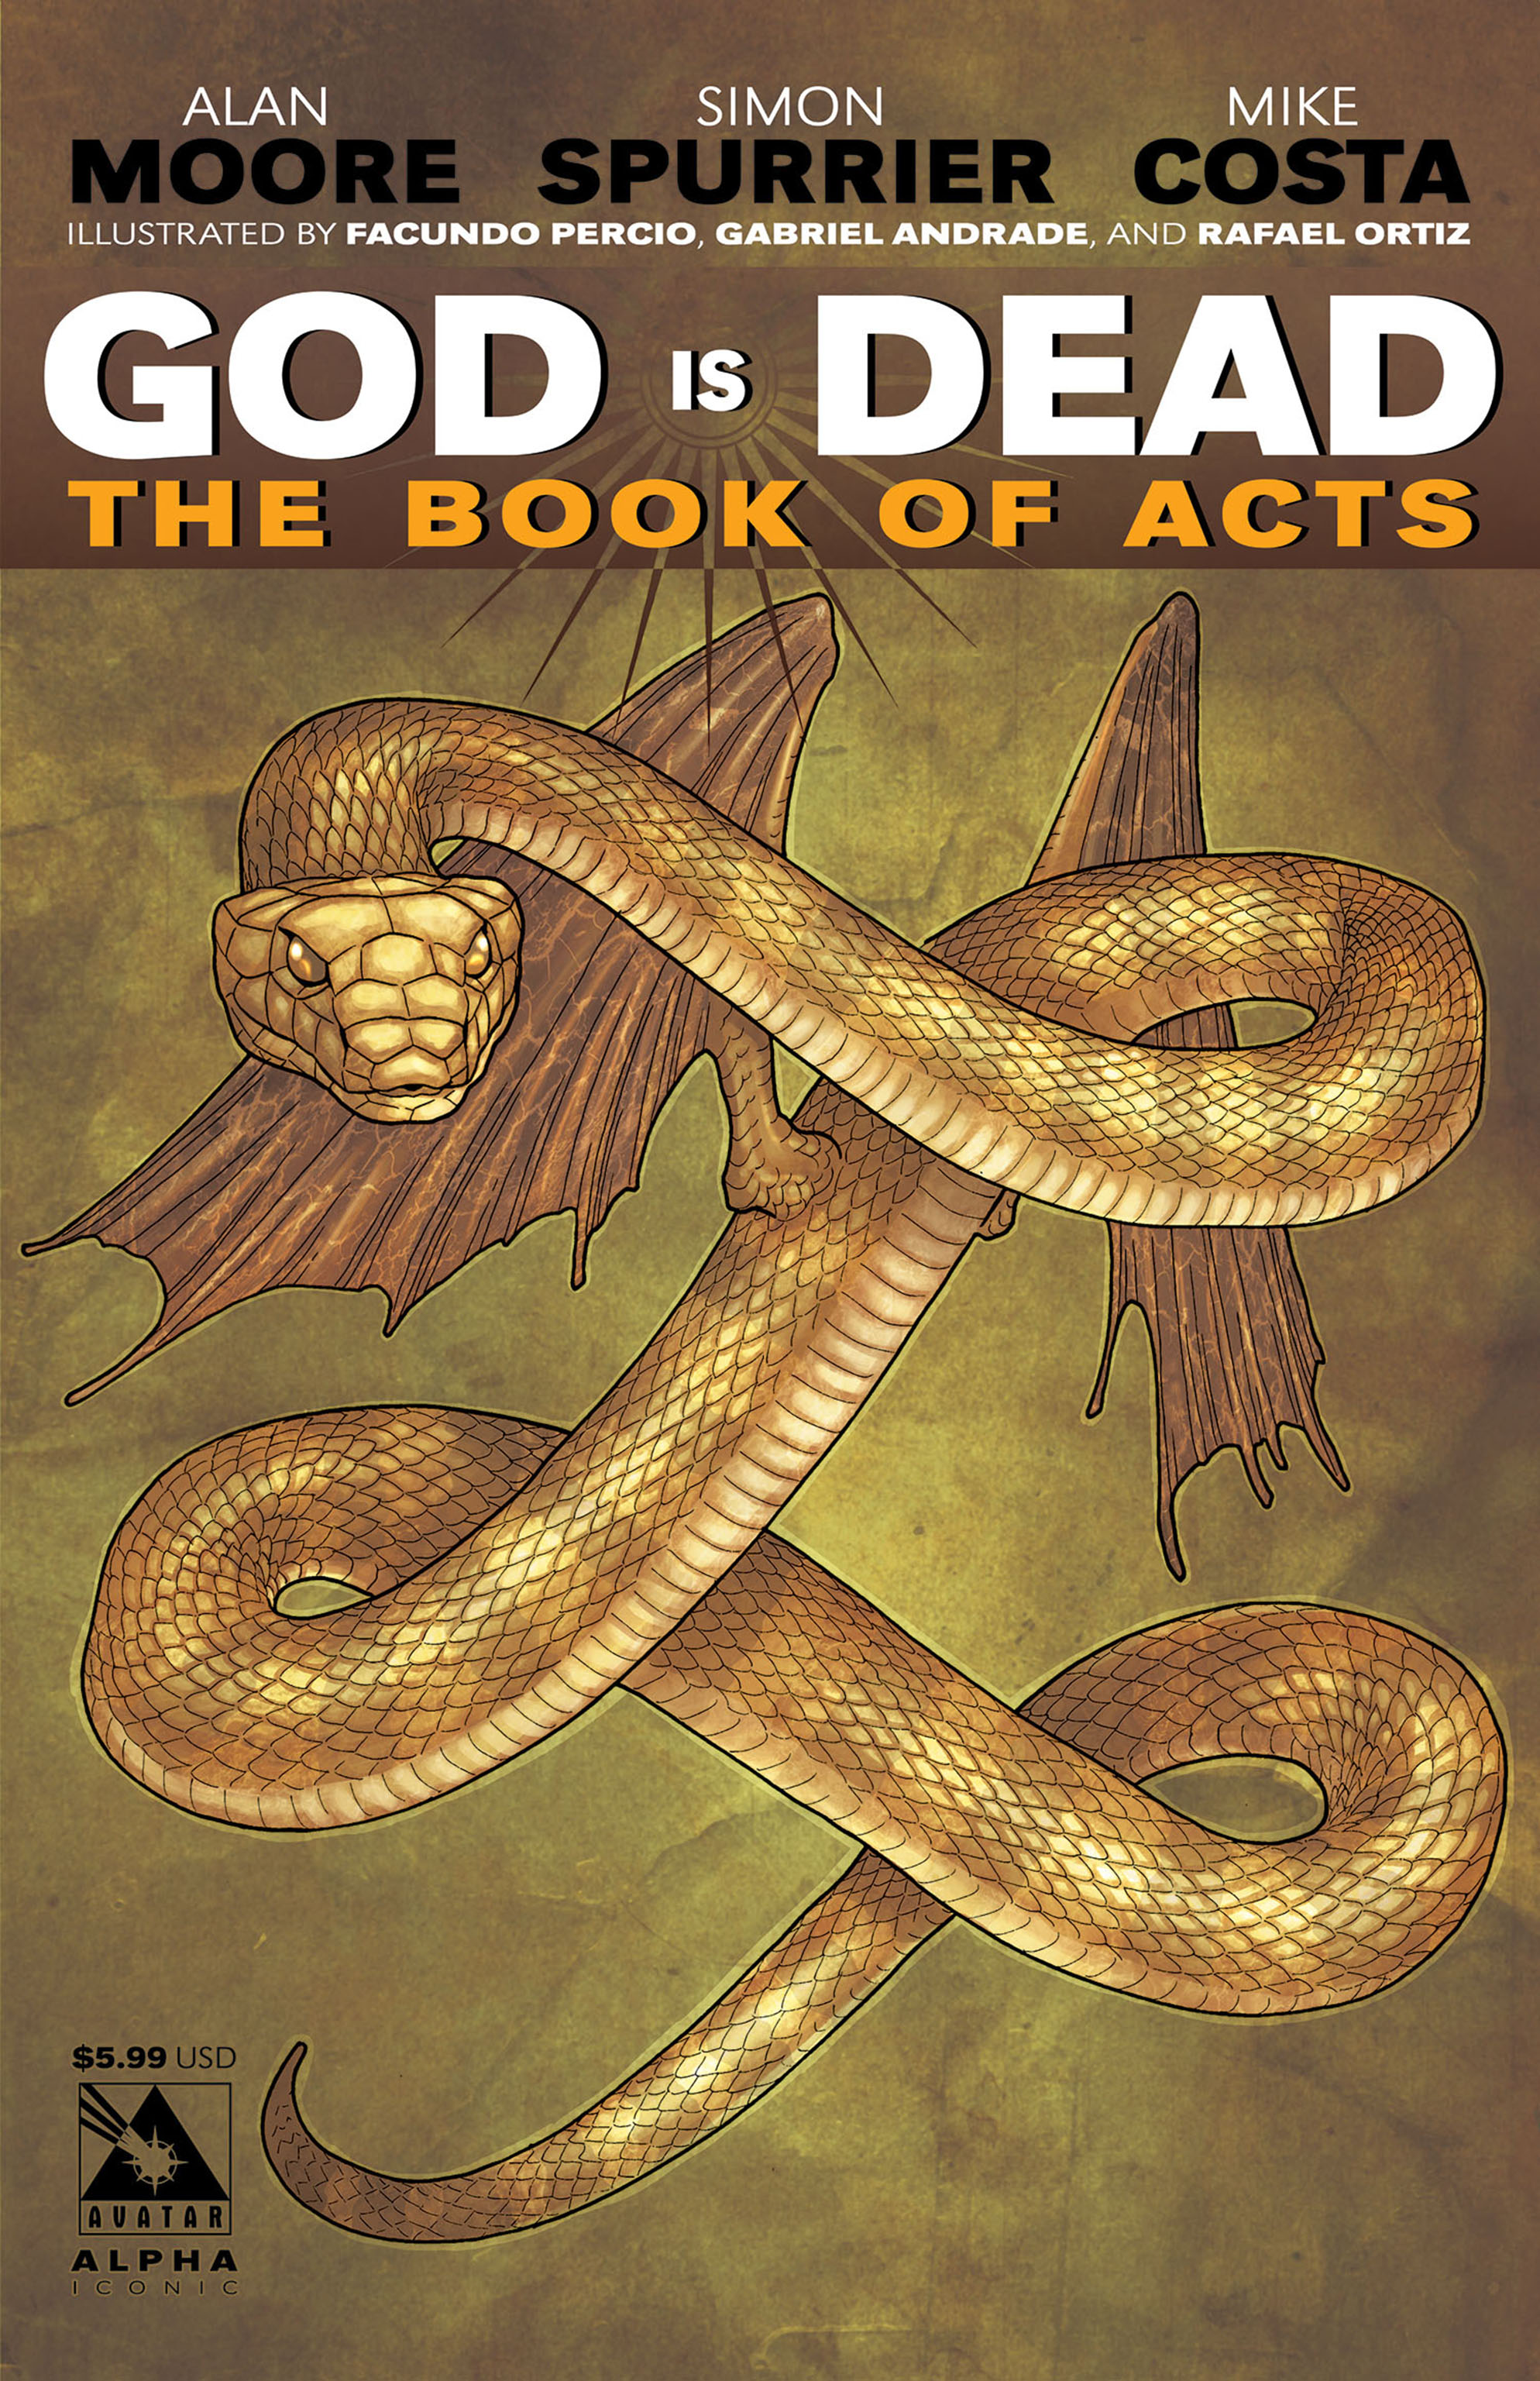 Read online God is Dead: Book of Acts comic -  Issue # Alpha - 5